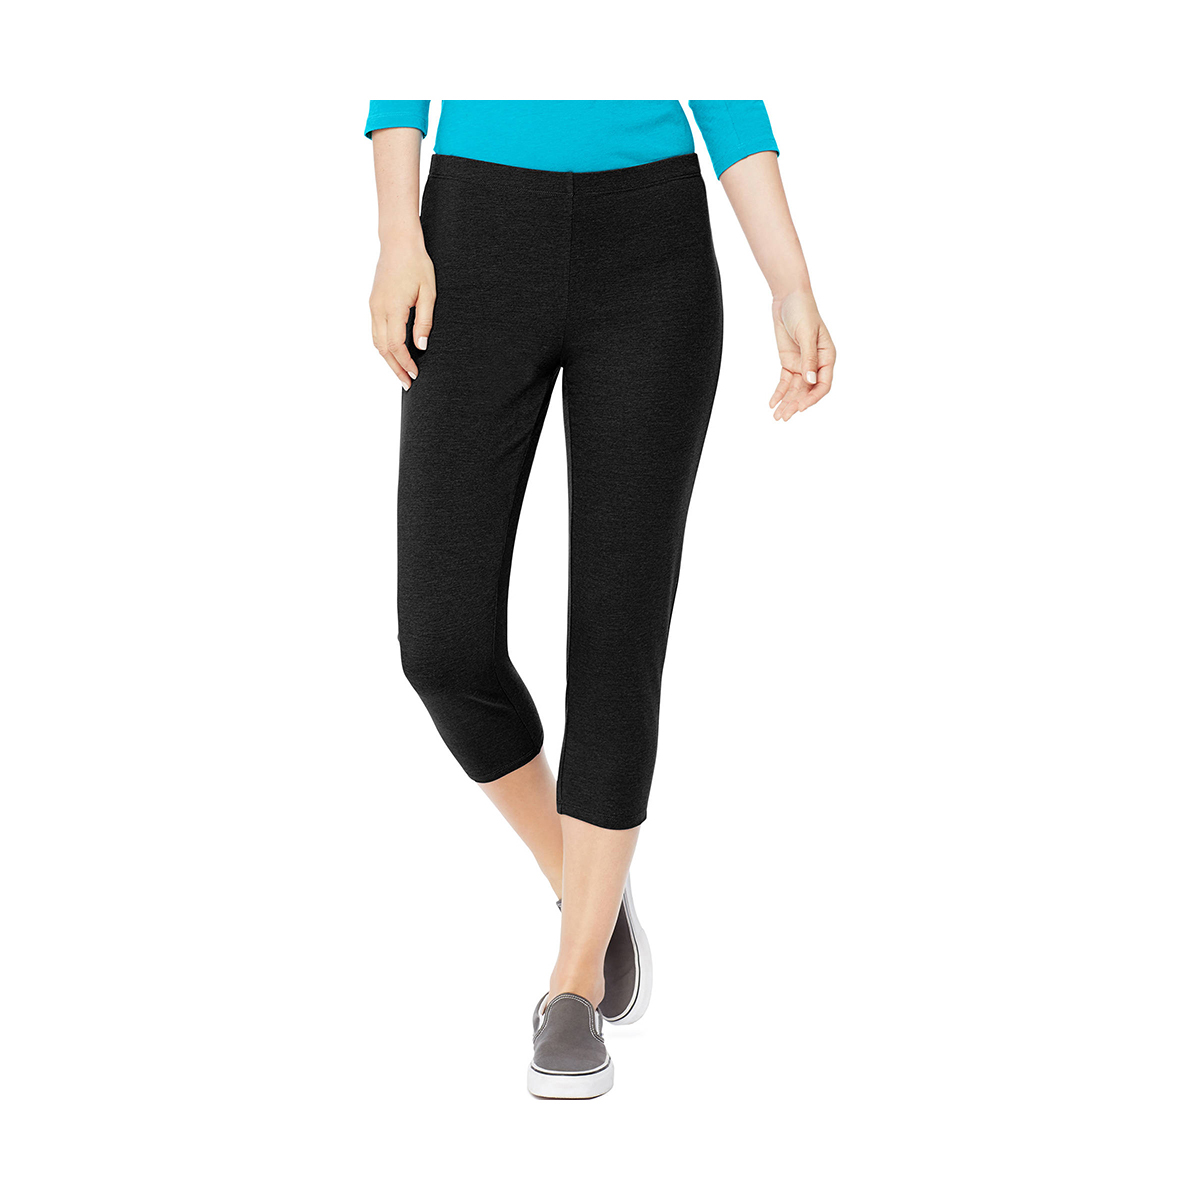 4594bad075a Best Cropped Option  Hanes Women s Stretch Jersey Capri